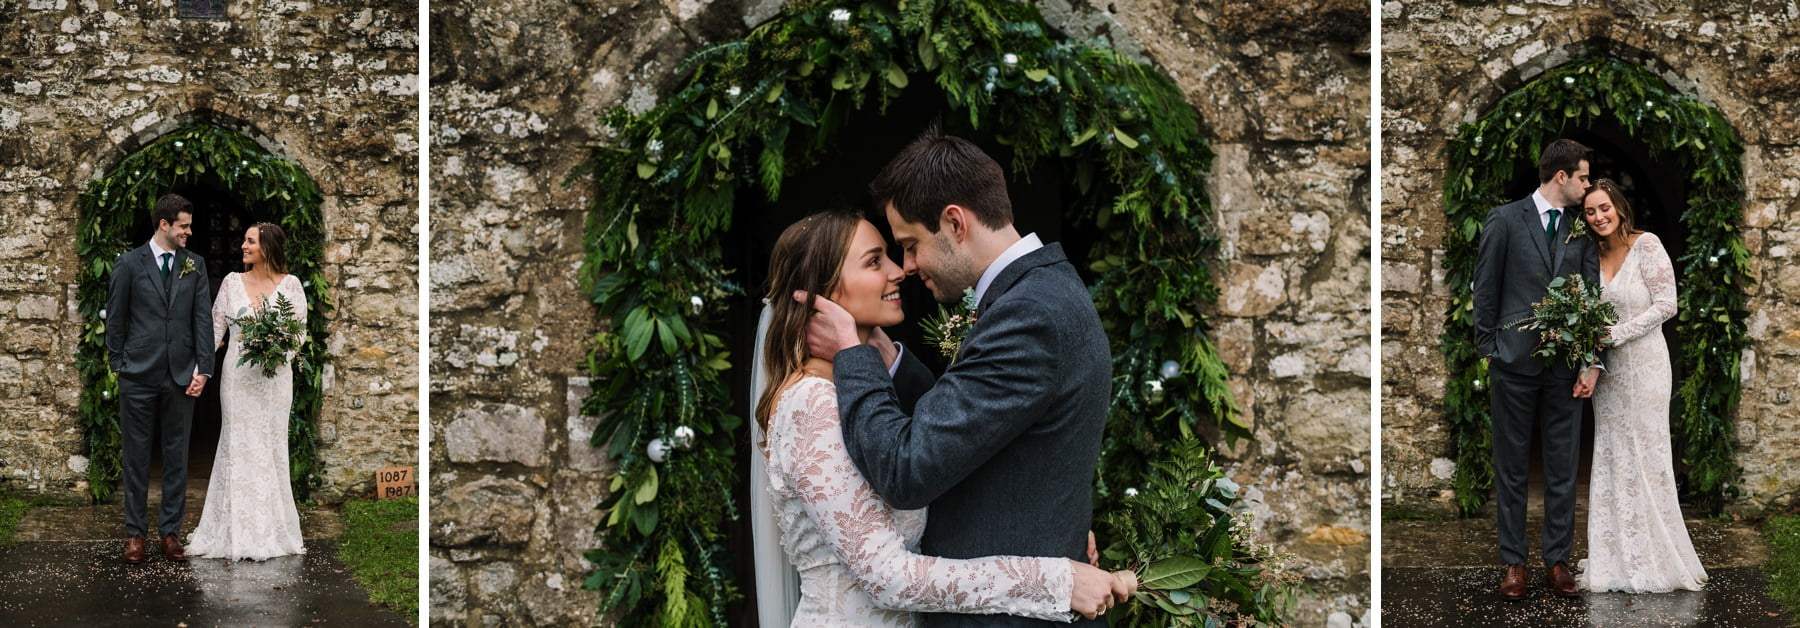 Hampshire wedding photographer at New Forest Church